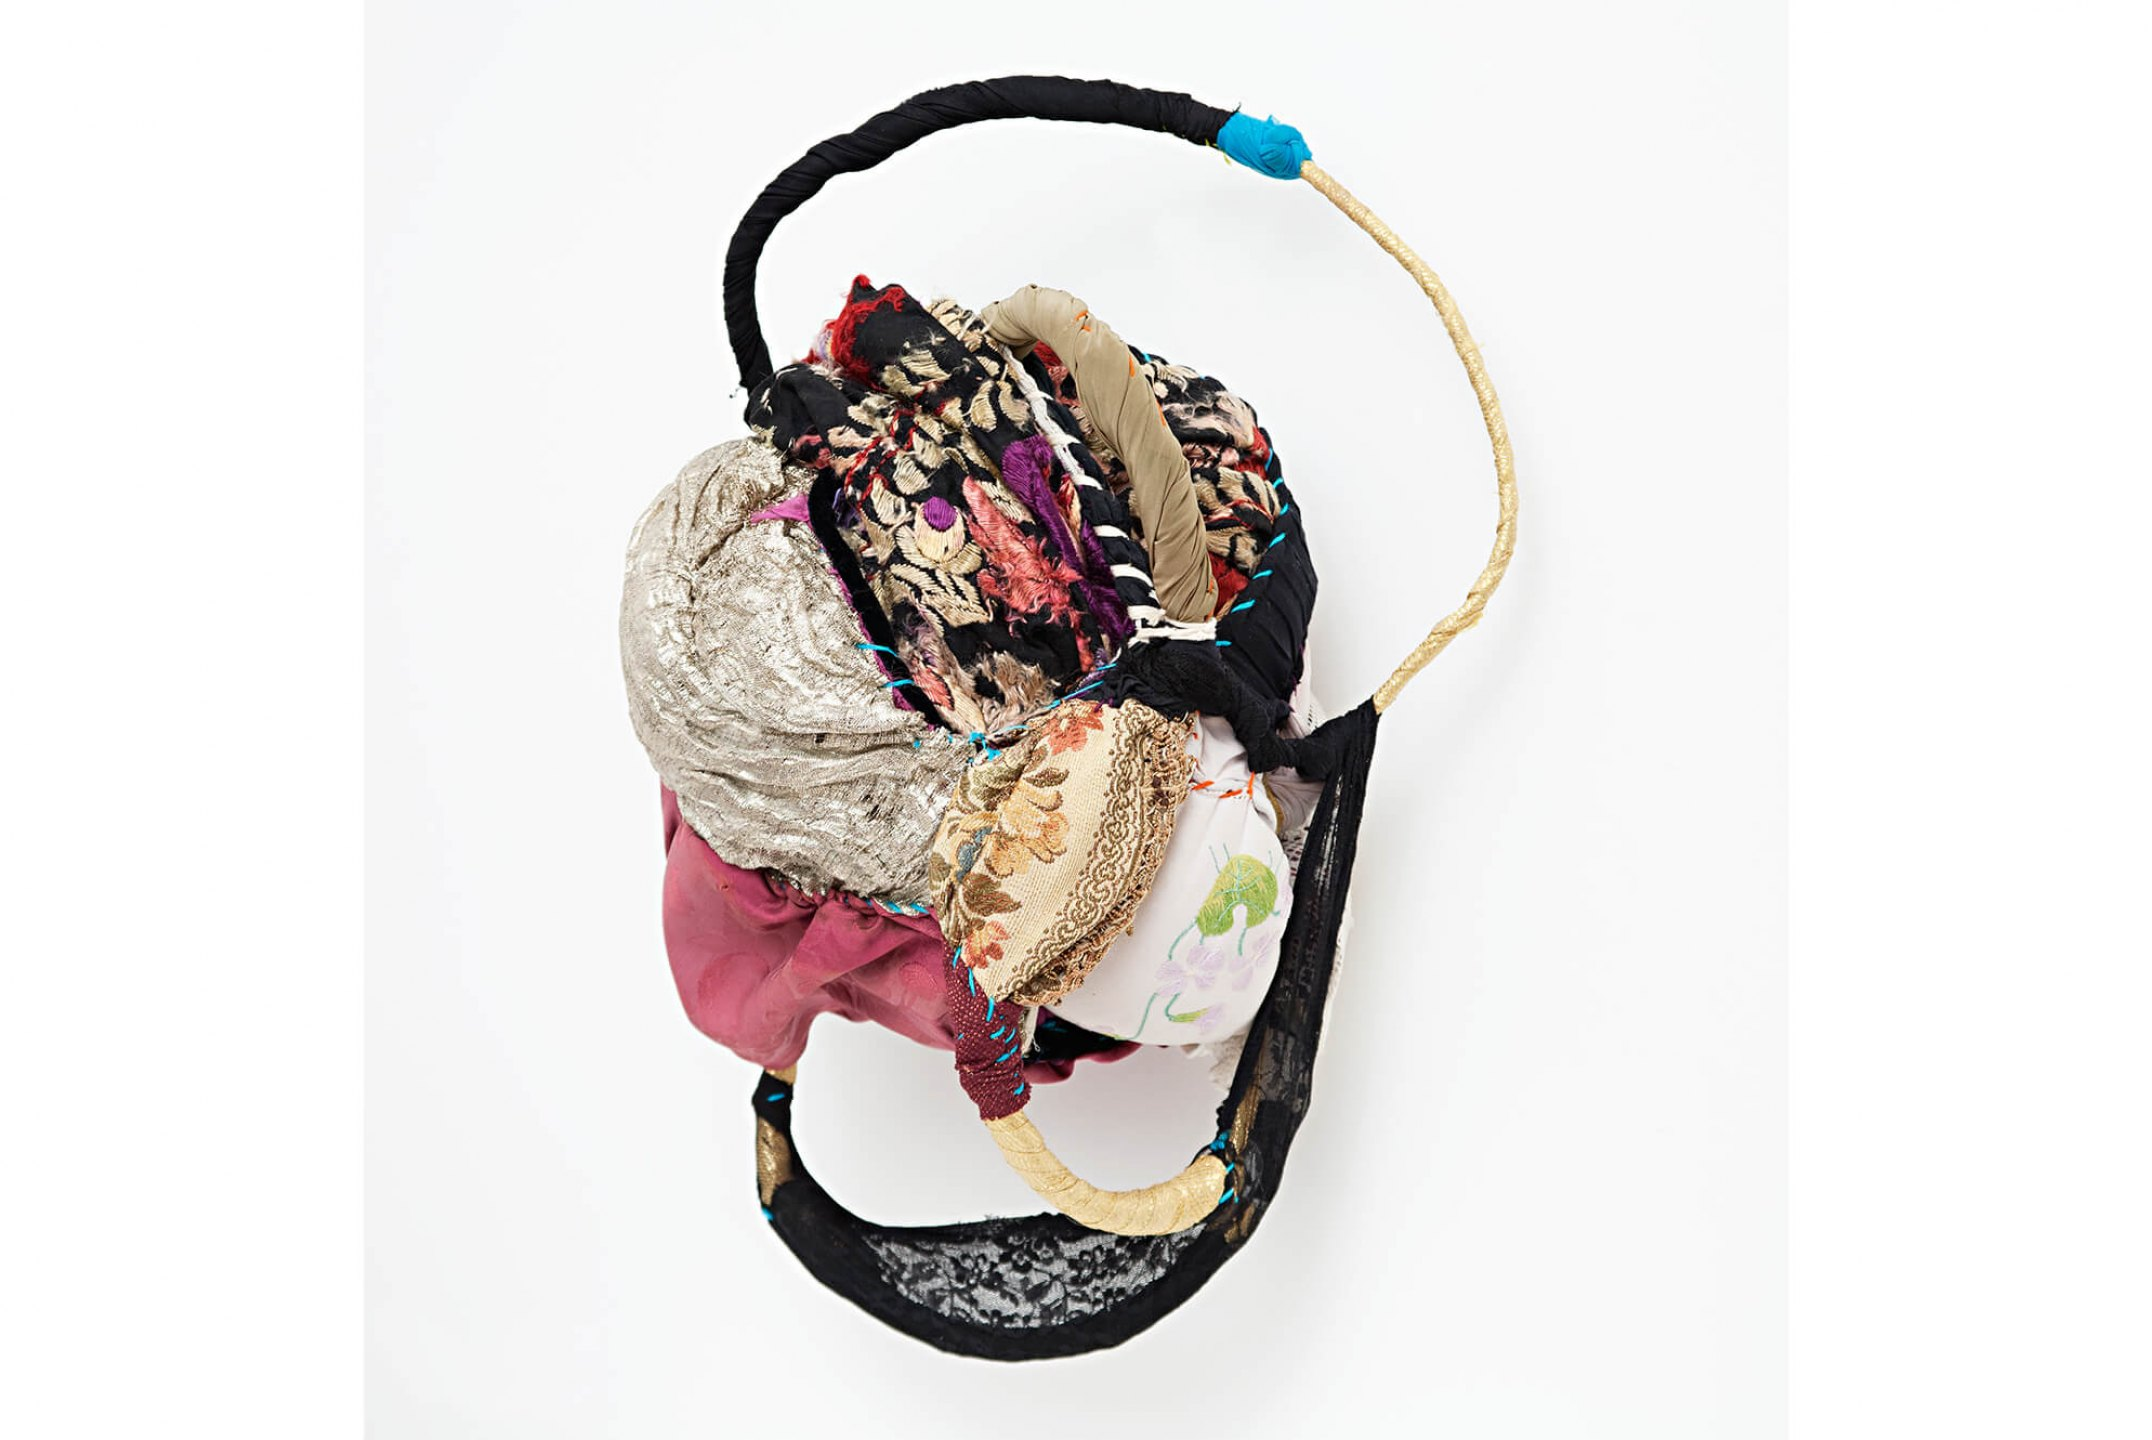 Sonia Gomes,<em>Memória</em>,2006, stitching, bindings, different fabrics and laces on wire, 50 × 36 × 23 cm - Mendes Wood DM